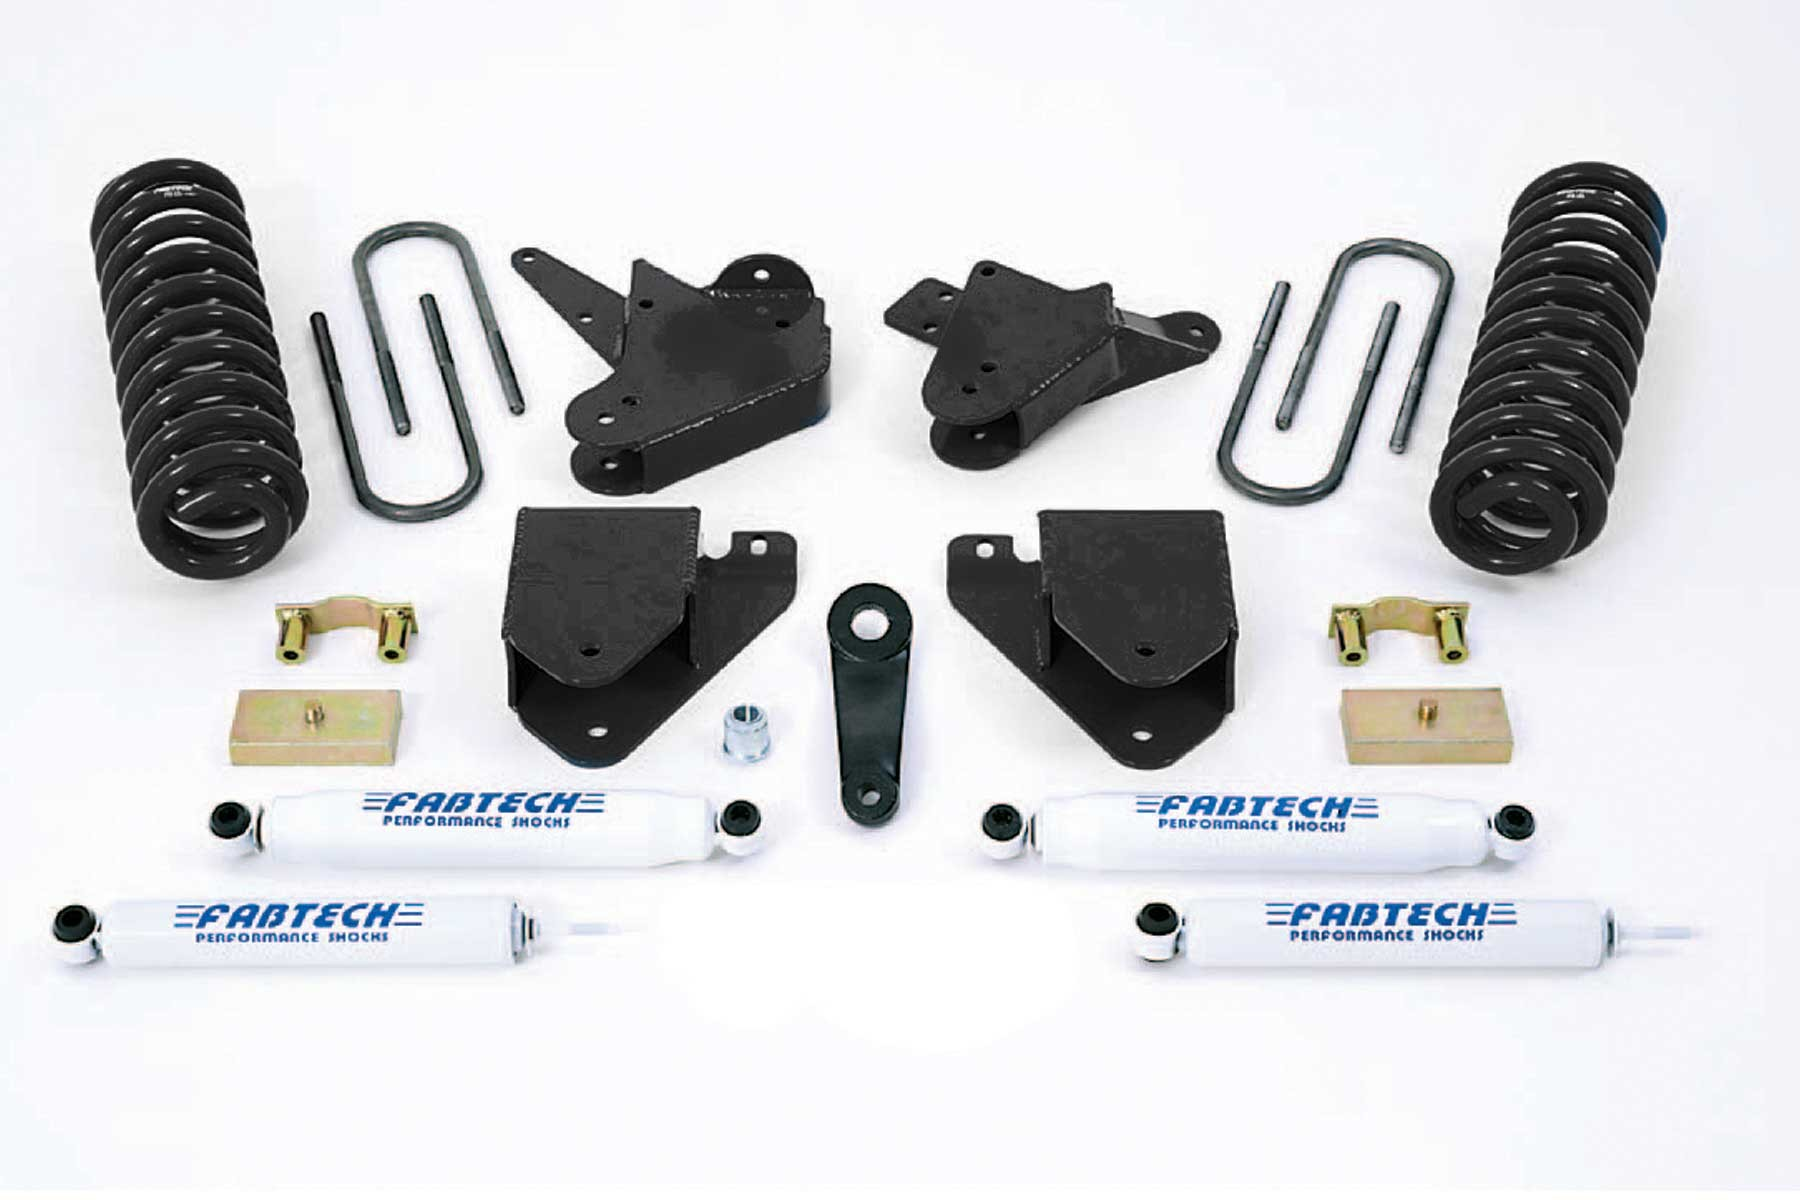 FABTECH 2001-04 FORD F250 / 350 2WD [GAS OR 6.0L DIESEL] - 2000-05 EXCURSION F250 / 350 2WD [GAS OR 6.0L DIESEL]-6″ BASIC SYSTEM W/ SHOCKS